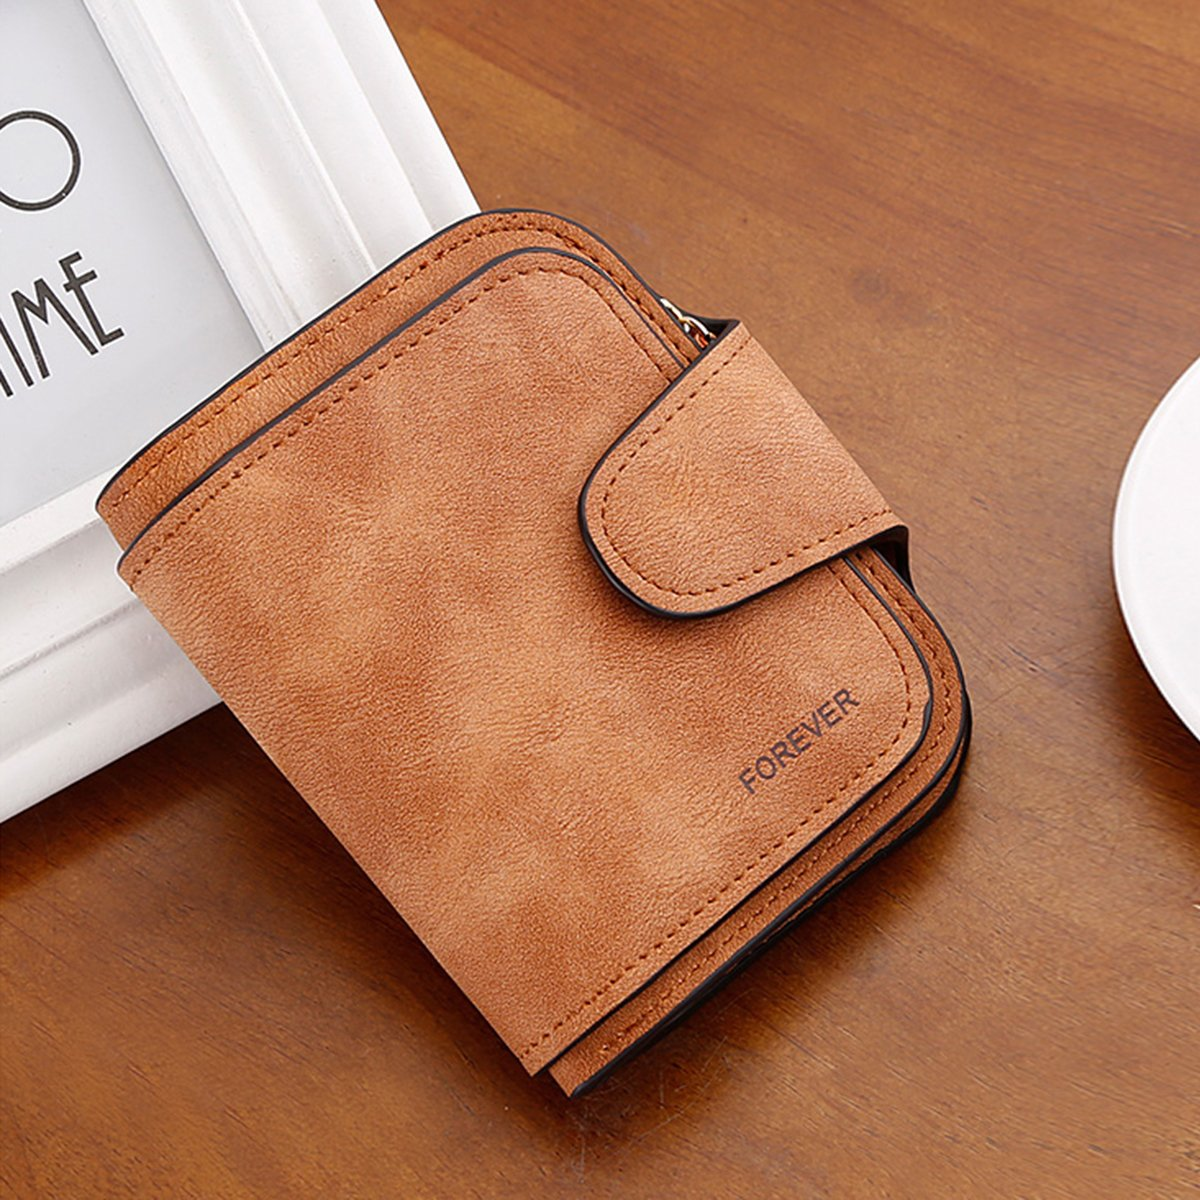 Wallet for Women Leather Clutch Short Purse Ladies Credit Card Holder Organizer with Zip Pocket - Brown by EUGO (Image #4)